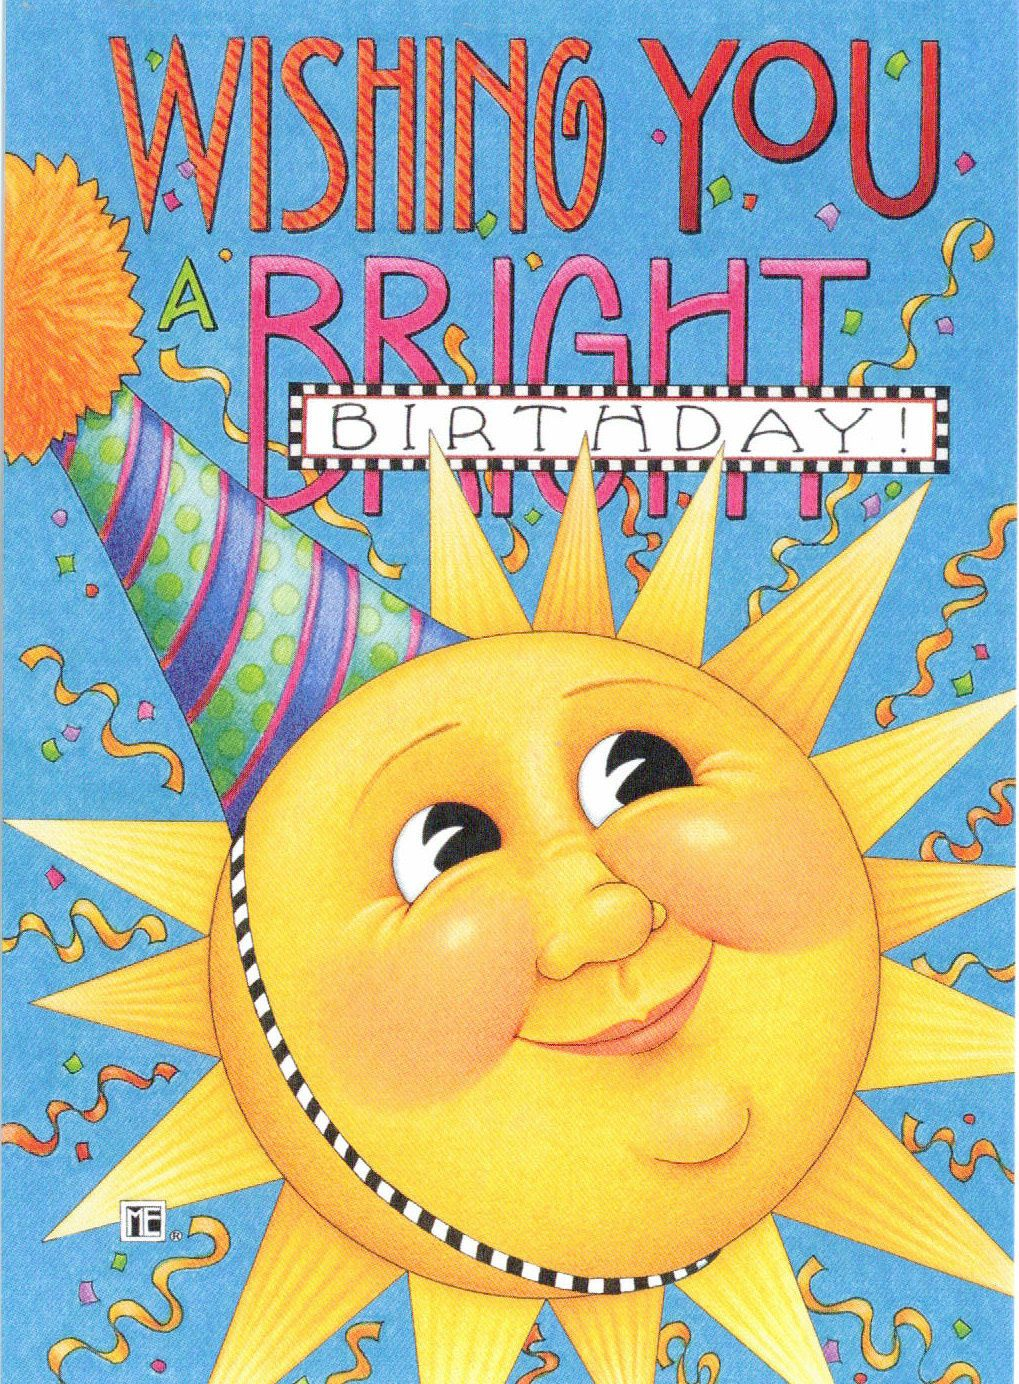 Mary Engelbreit Wishing You A Bright Birthday Sun Party